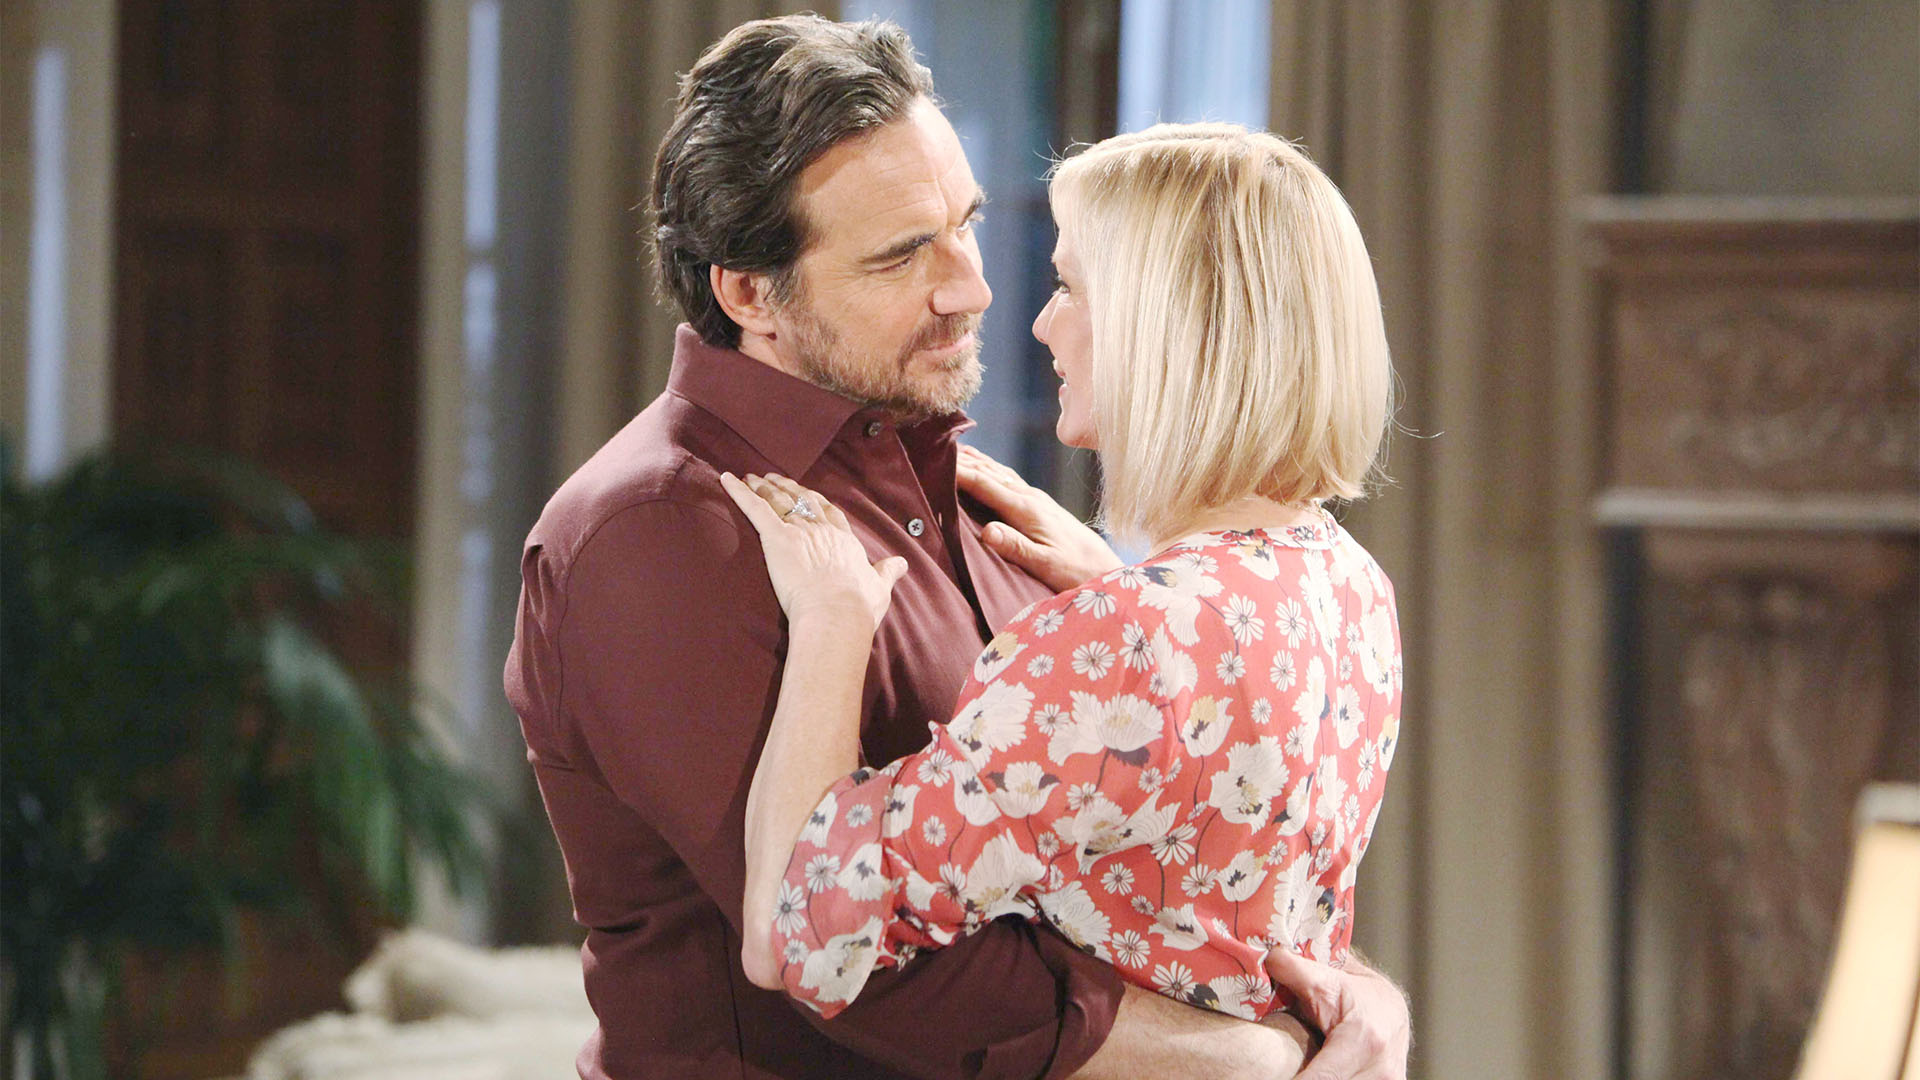 The night before their wedding, Brooke and Ridge reminisce about their love story.